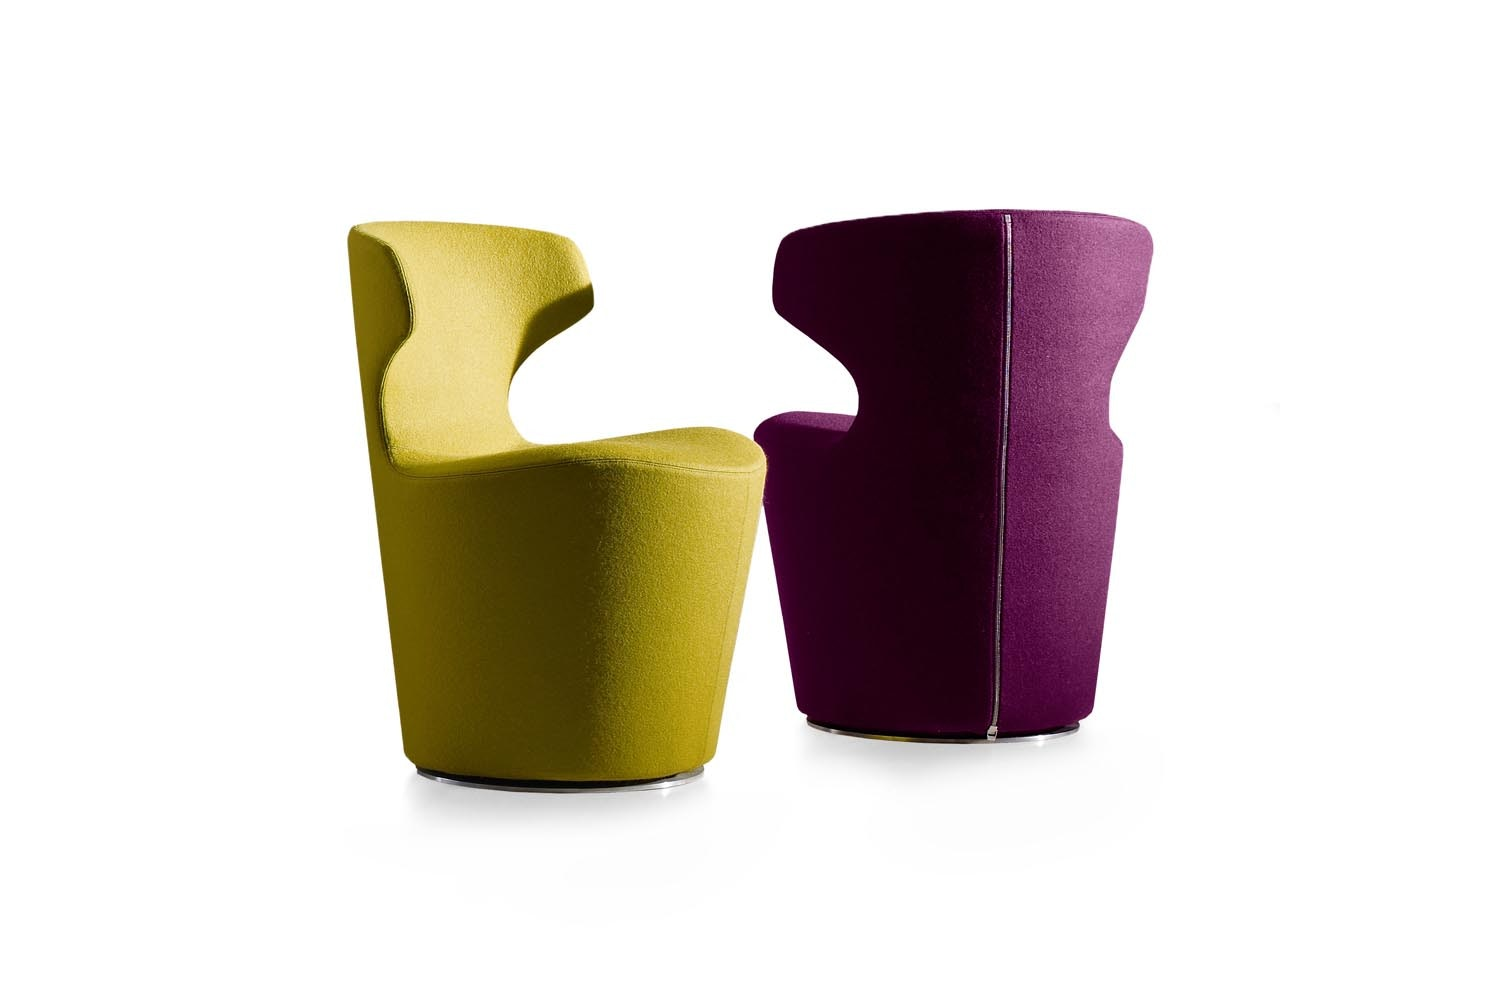 Mini Papilio Armchair by Naoto Fukasawa for B&B Italia